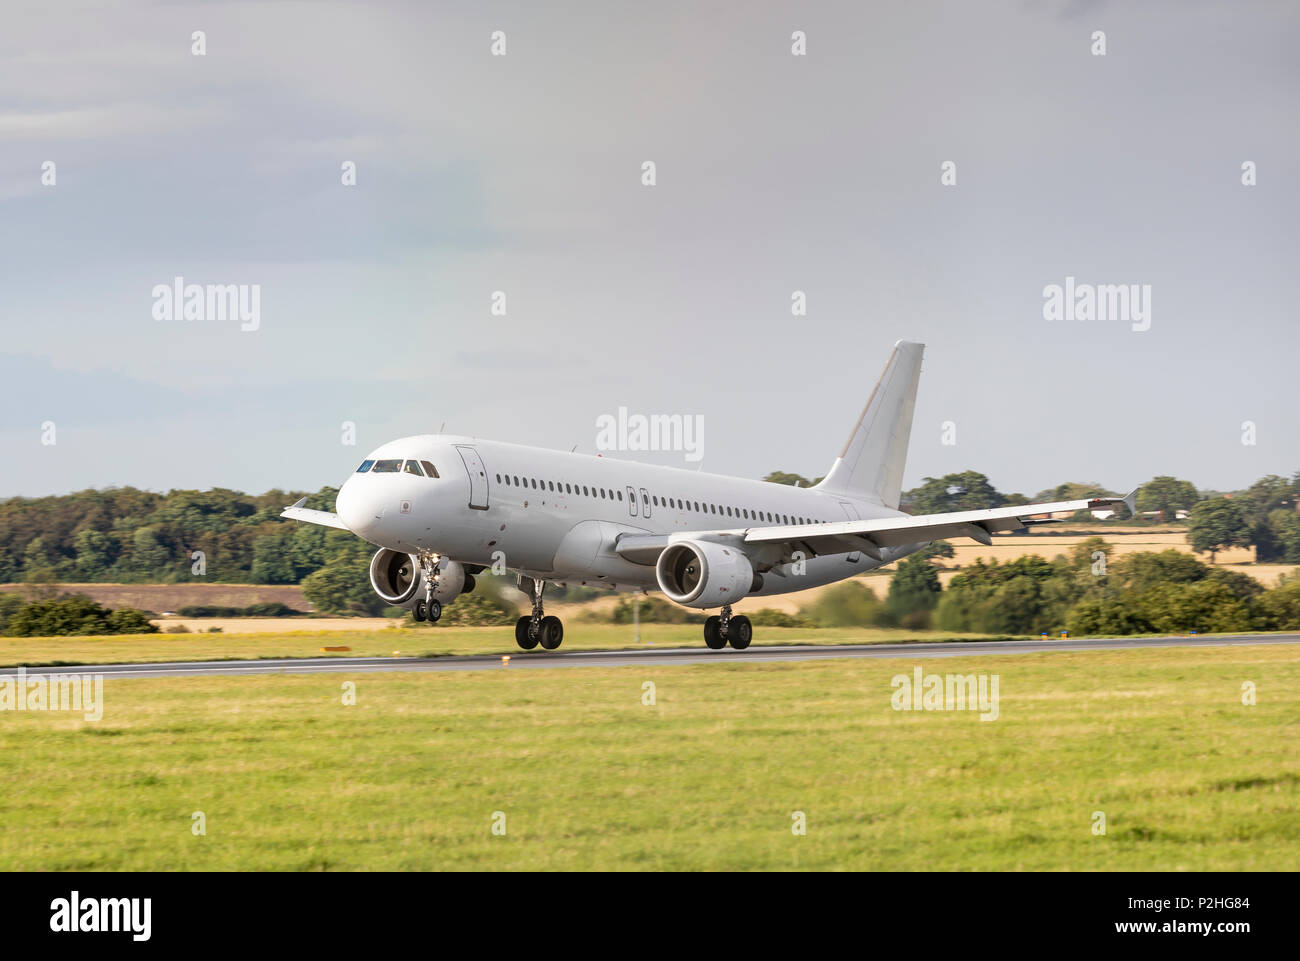 Aircraft Livery Stock Photos & Aircraft Livery Stock Images - Alamy